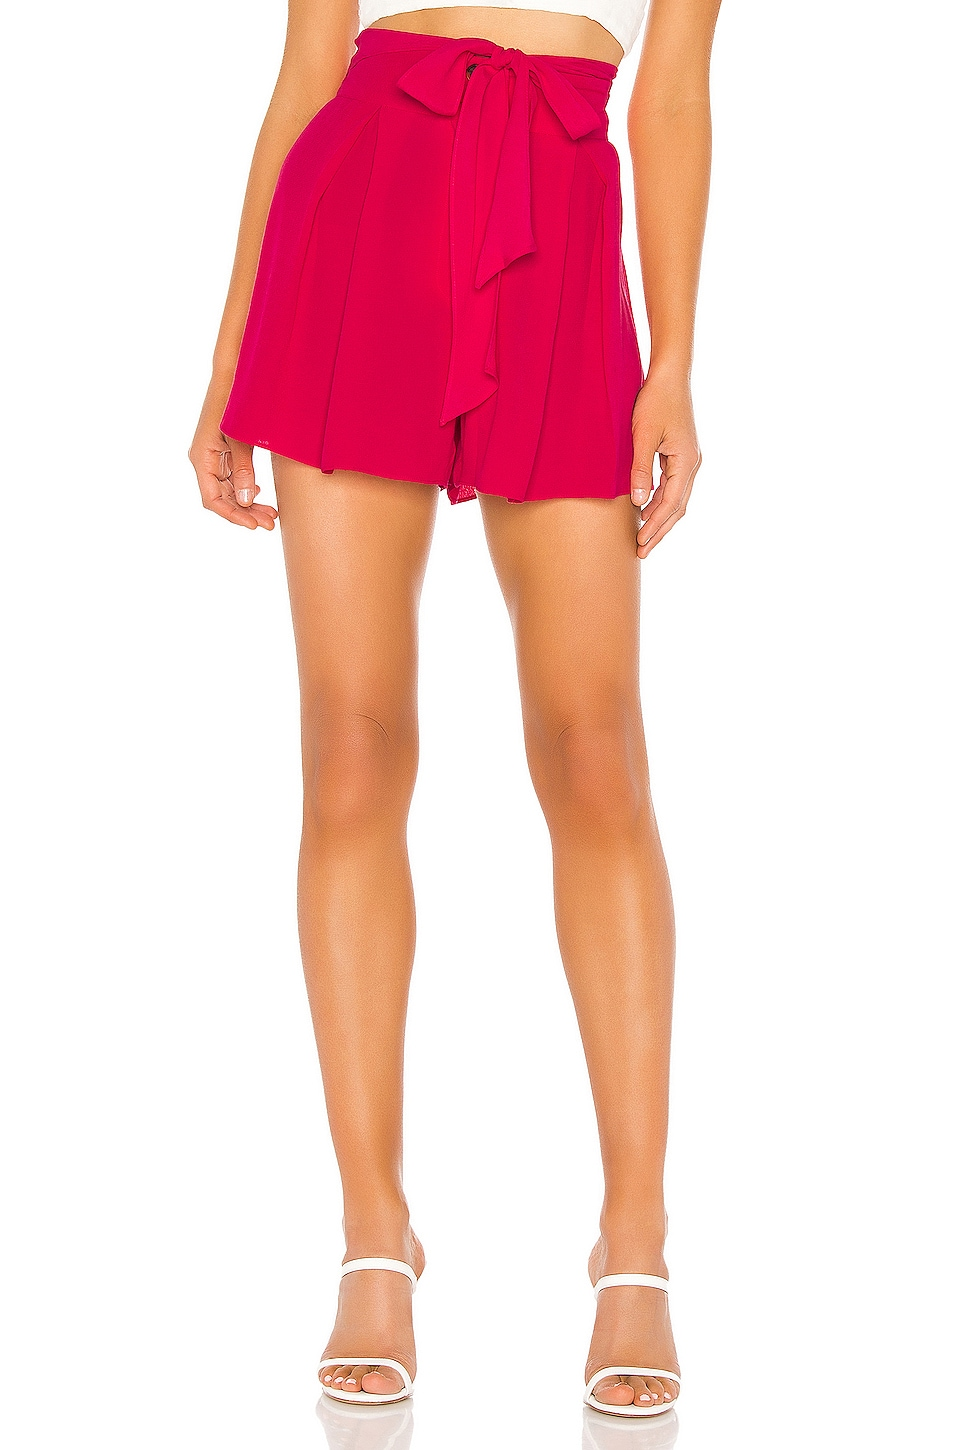 J.O.A. Pleated Waist Tie Short in Punch Pink